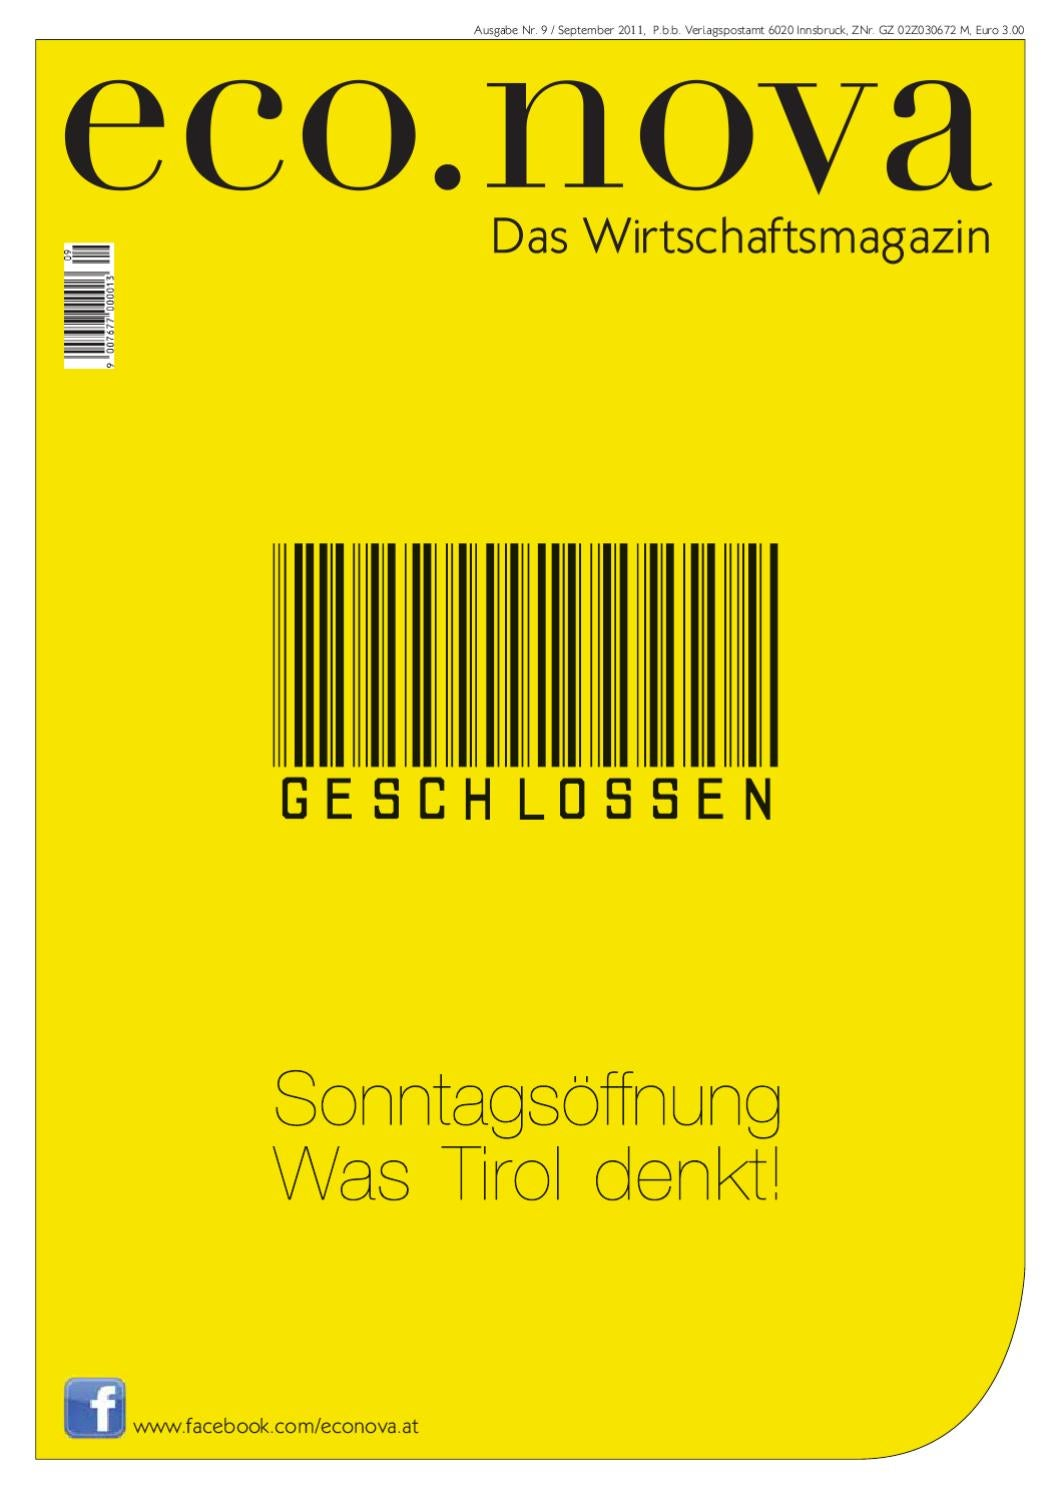 ecova Wirtschaftsmagazin September 2011 by ecova verlags